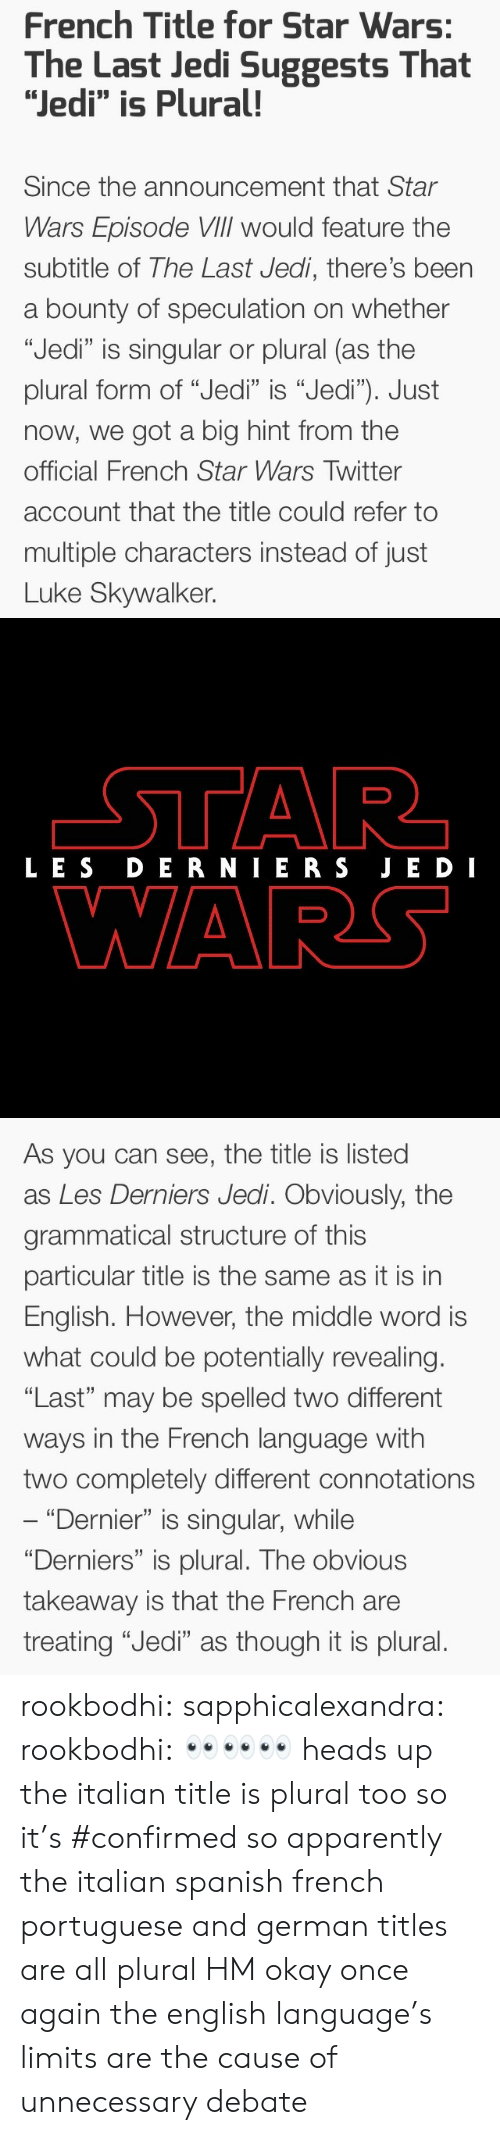 """Apparently, Jedi, and Luke Skywalker: French Title for Star Wars:  The Last Jedi Suggests That  """"Jedi"""" is Plural!  Since the announcement that Star  Wars Episode VIlIl would feature the  subtitle of The Last Jedi, there's been  a bounty of speculation on whether  """"Jedi"""" is singular or plural (as the  plural form of """"Jedi"""" is """"Jedi""""). Just  now, we got a big hint from the  official French Star Wars Twitter  account that the title could refer to  multiple characters instead of just  Luke Skywalker.   LES DERNIERS JE DI  WARS   As you can see, the title is listed  as Les Derniers Jedi. Obviously, the  grammatical structure of this  particular title is the same as it is in  English. However, the middle word is  what could be potentially revealing.  """"Last"""" may be spelled two different  ways in the French language with  two completely different connotations  """"Dernier"""" is singular, while  """"Derniers"""" is plural. The obvious  takeaway is that the French are  treating """"Jedi"""" as though it is plural. rookbodhi:  sapphicalexandra:  rookbodhi: 👀👀👀 heads up the italian title is plural too so it's #confirmed  so apparently the italian spanish french portuguese and german titles are all plural HM okay once again the english language's limits are the cause of unnecessary debate"""